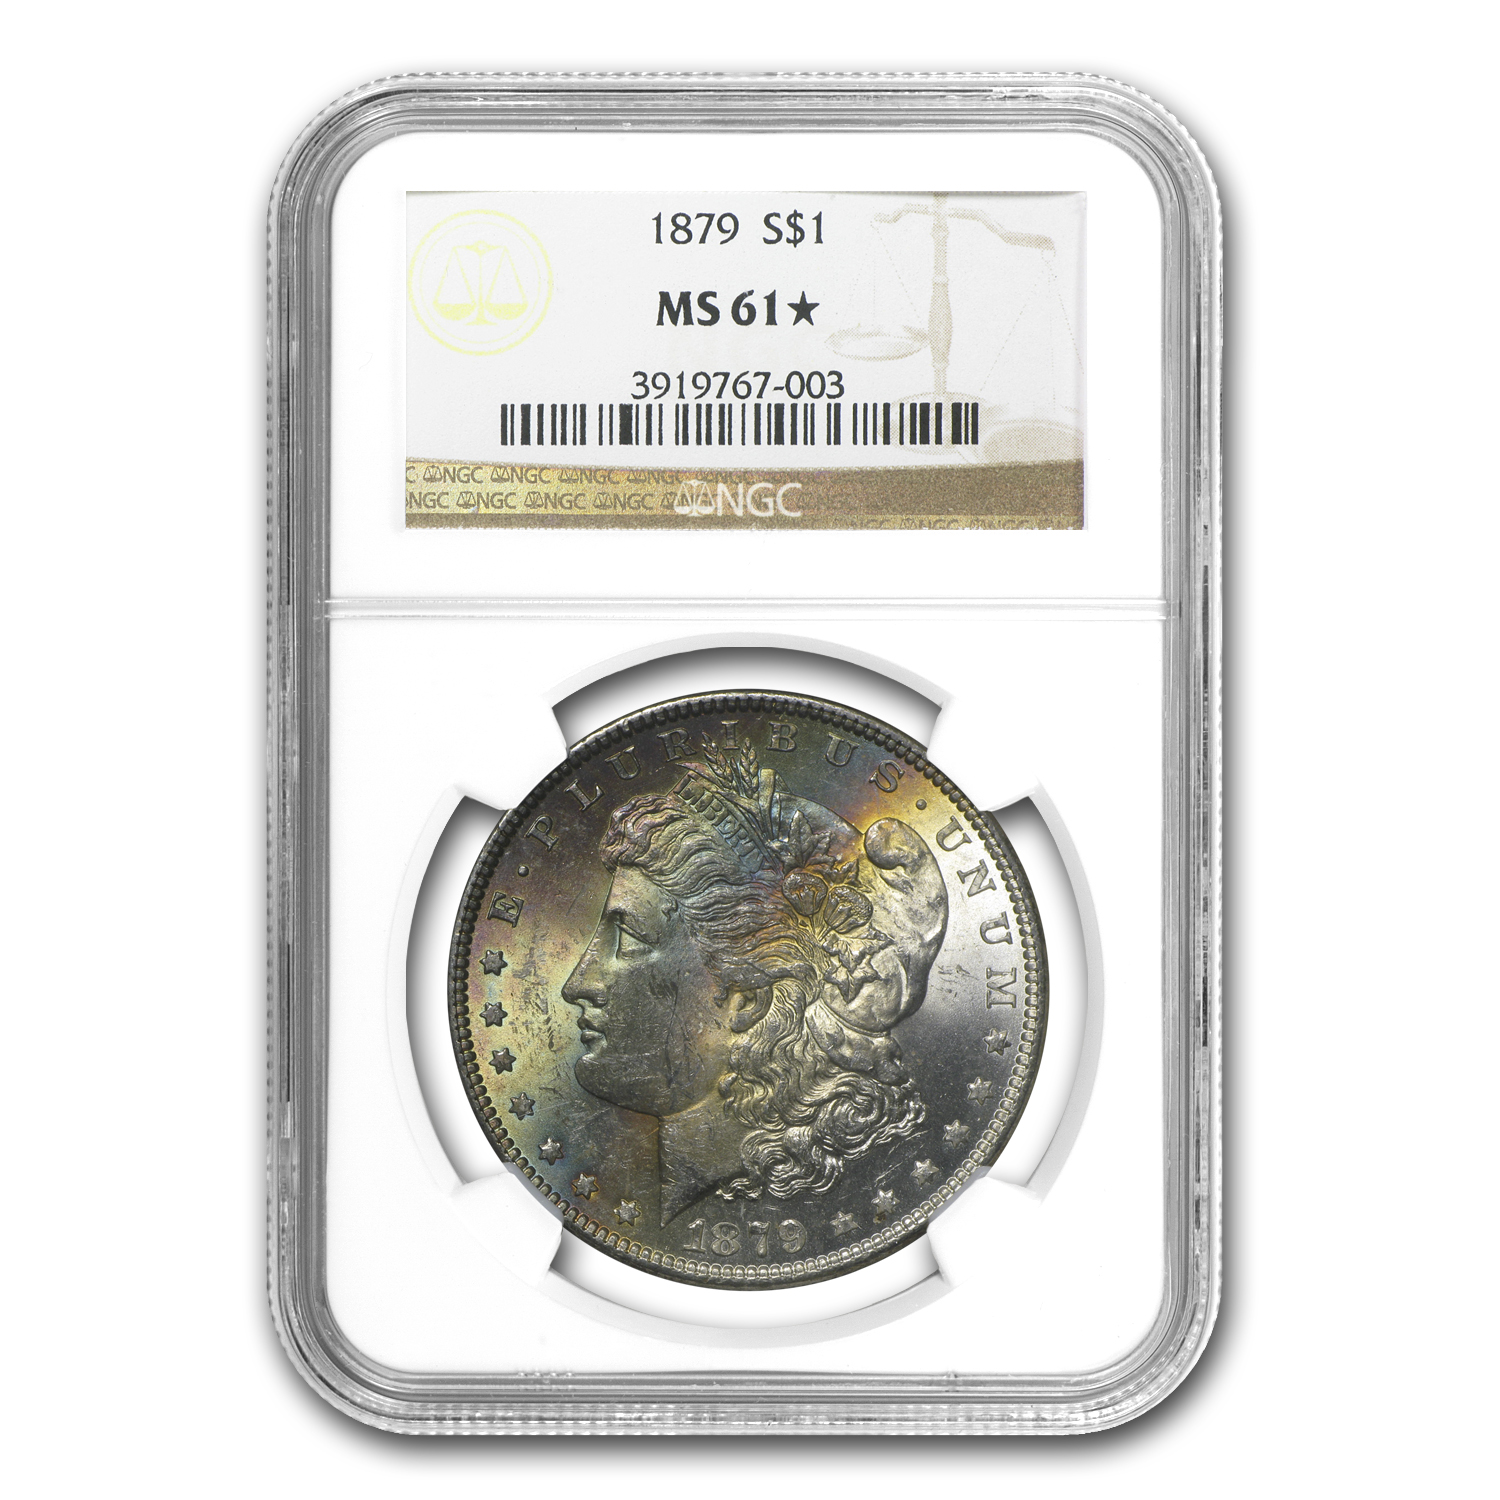 1879 Morgan Dollar MS-61* NGC (Rainbow Toning)